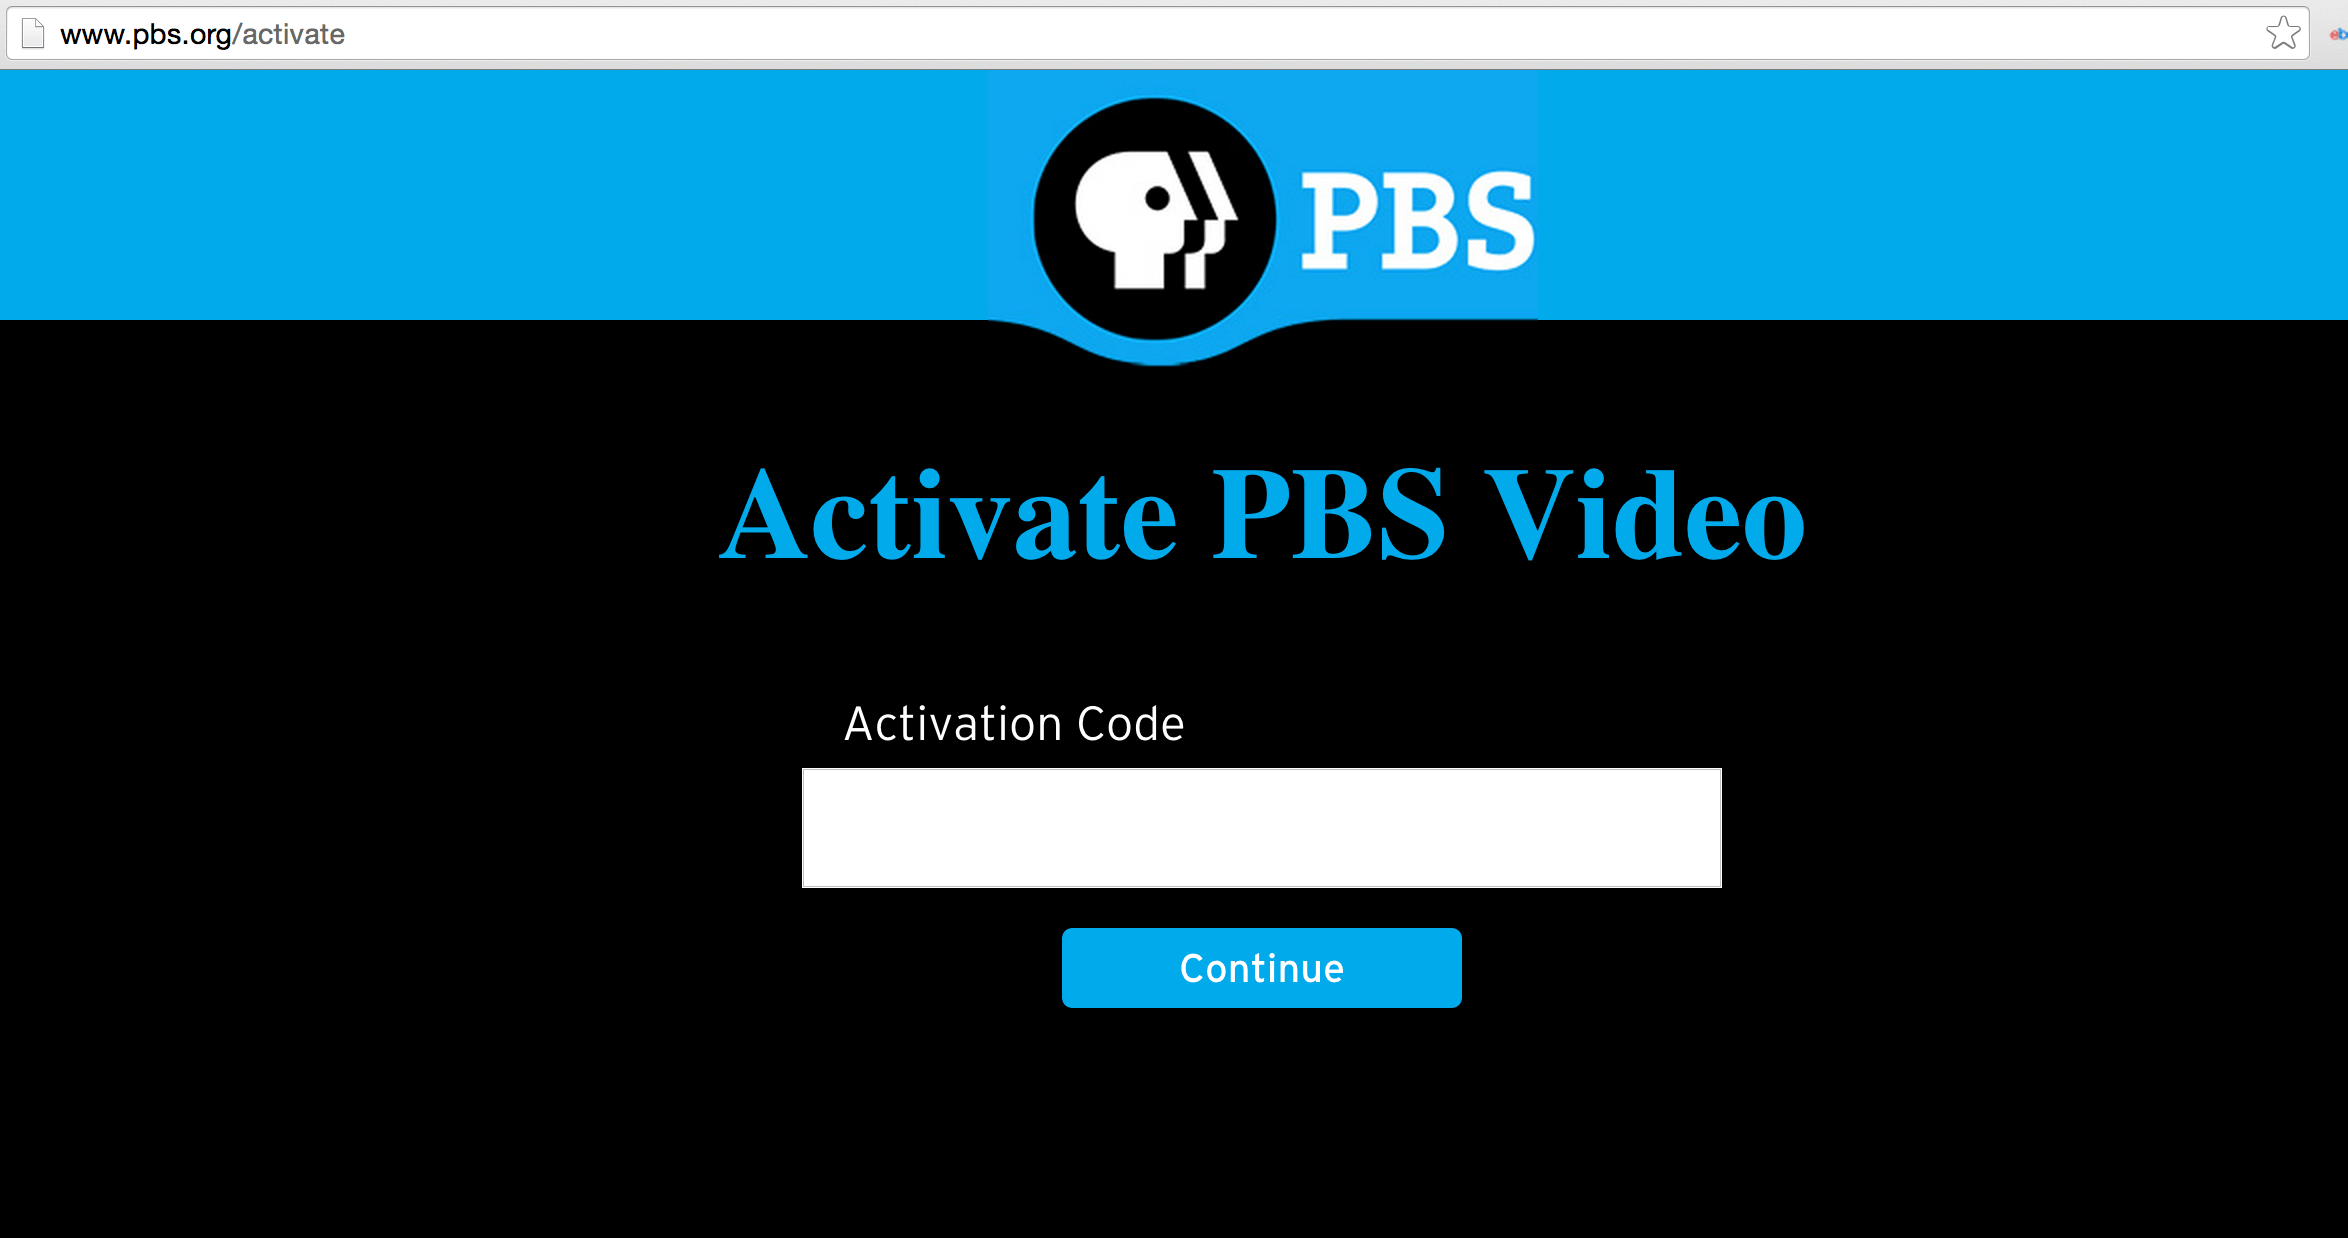 Create A New Roku Account How To Create Your Roku Account And Roku Activation Code How Do I Activate My Pbs App On Roku Pbs Main Product